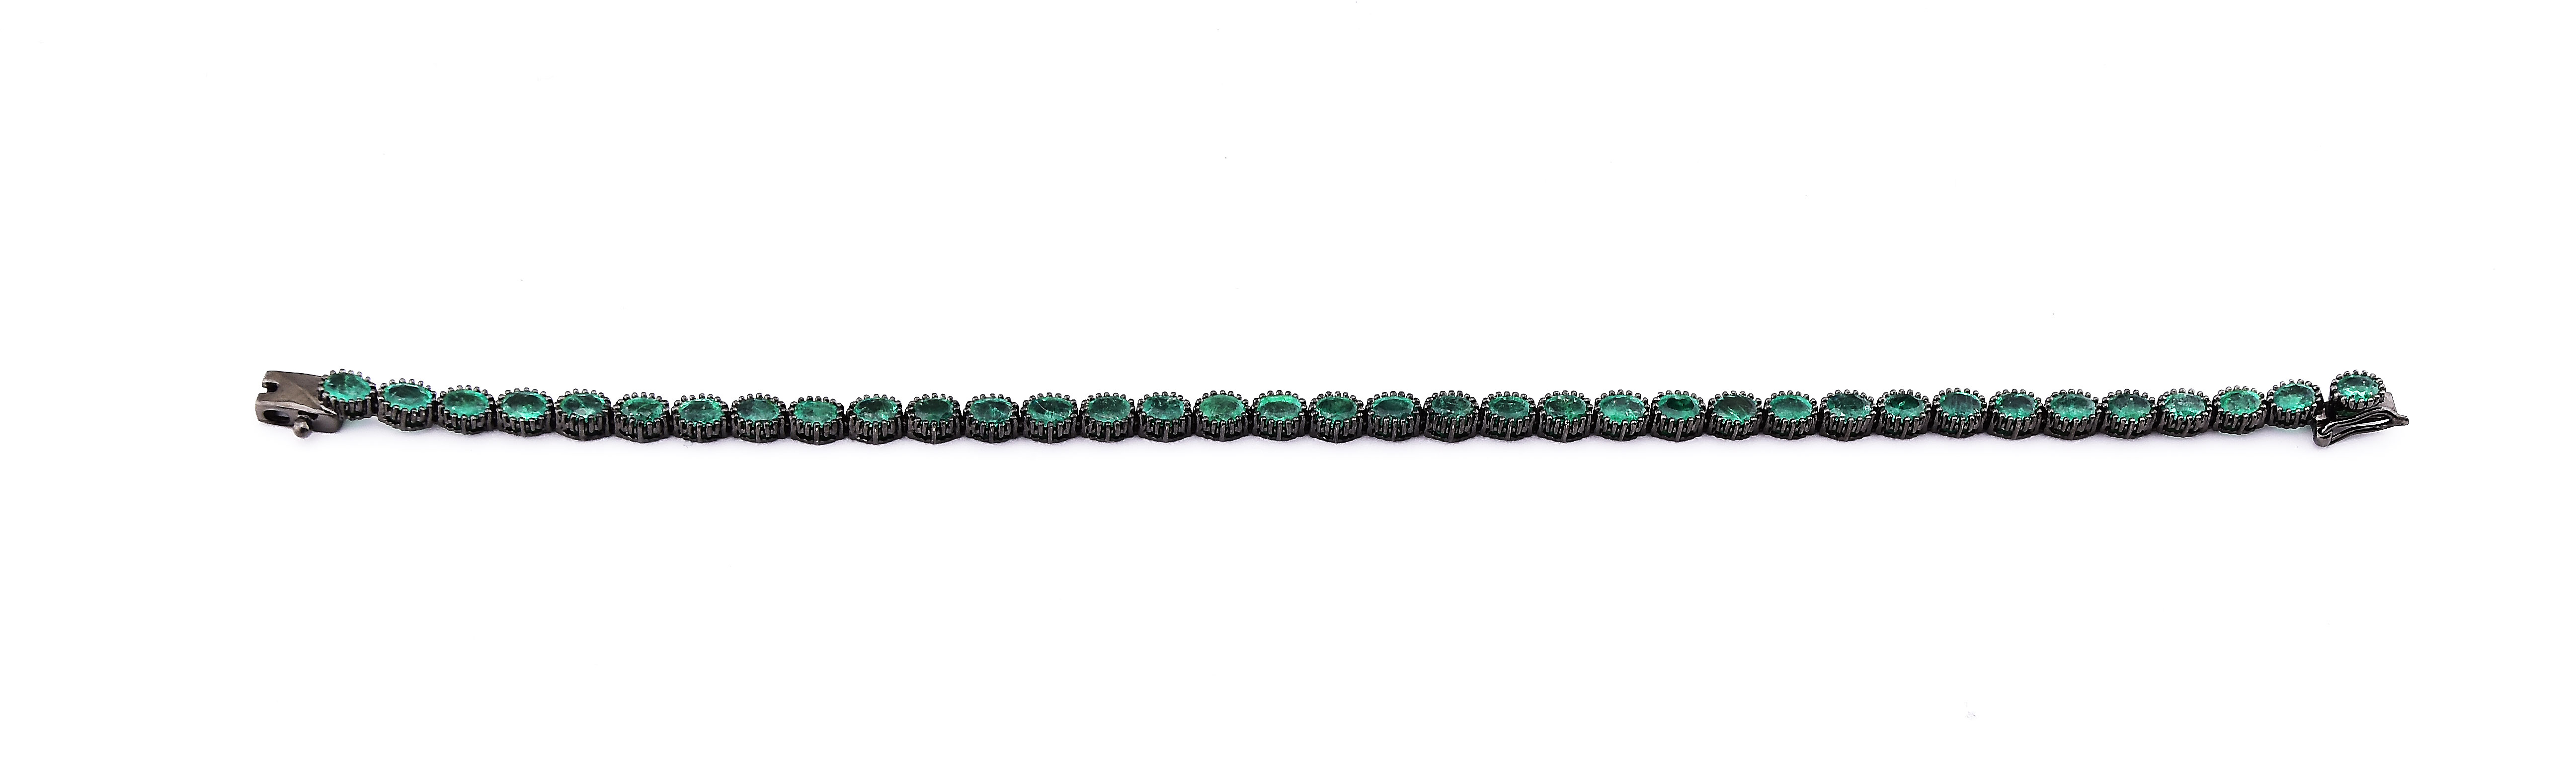 5.50 Carats Total Weight Emerald Bracelet